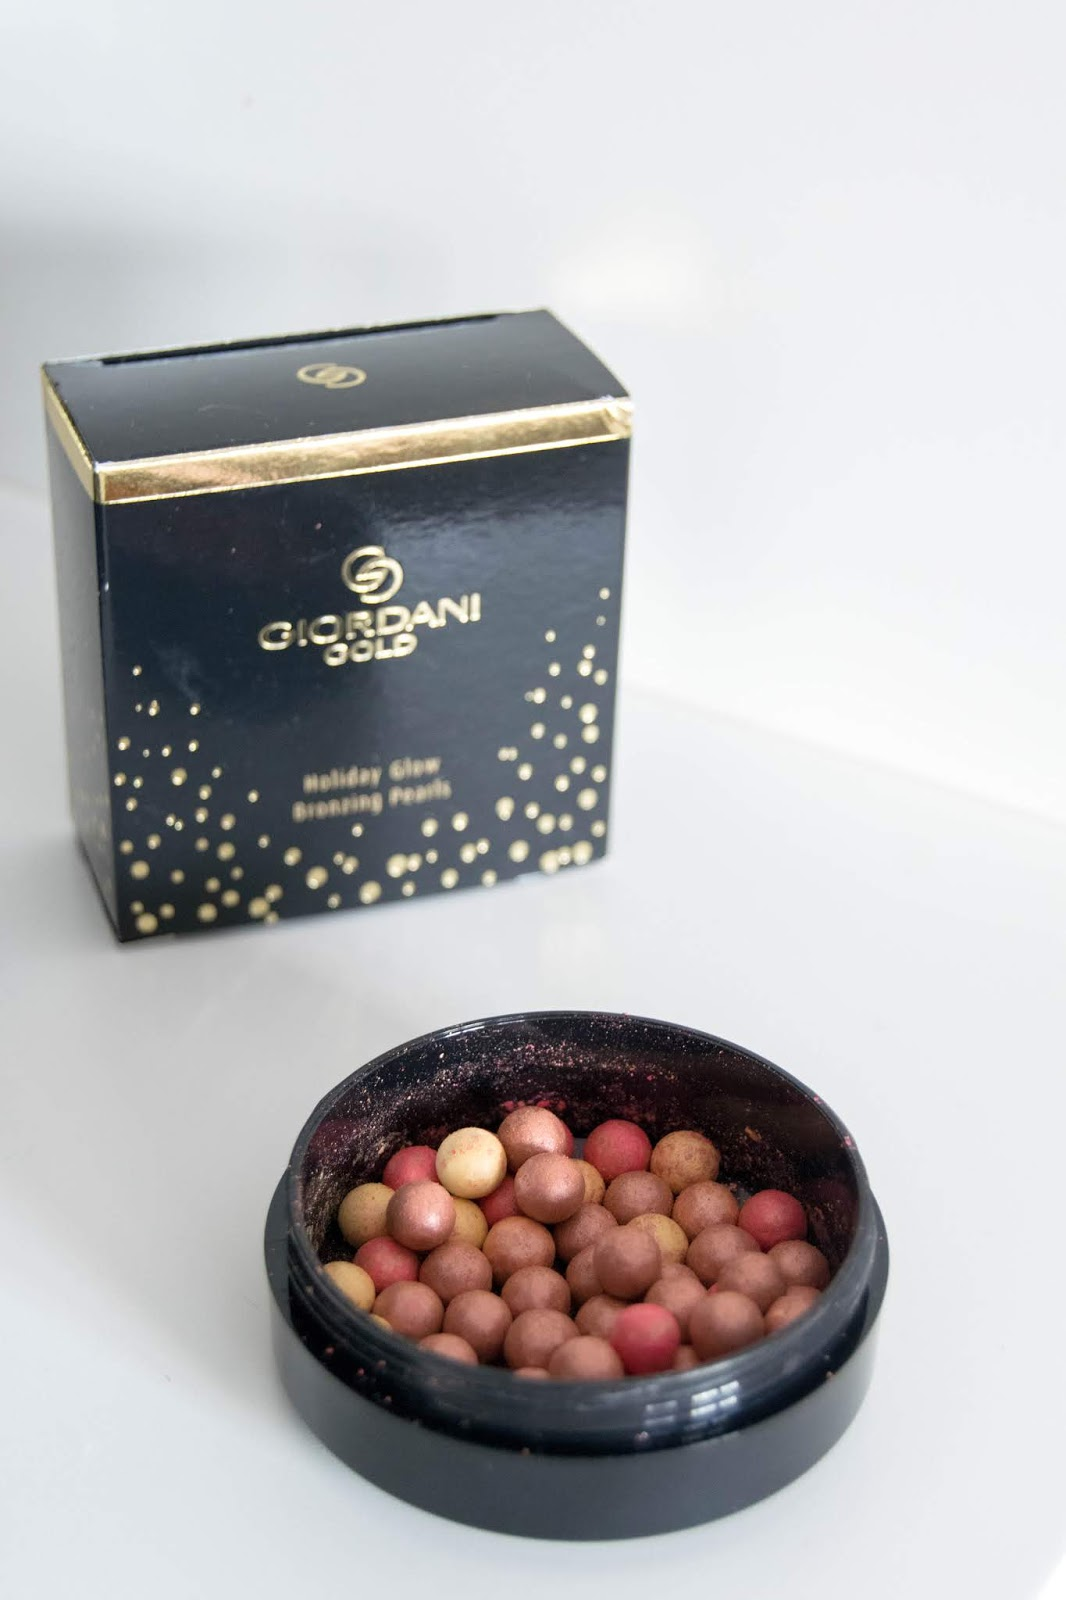 Holiday Glow Bronzing Pears Giordani Gold - Oriflame